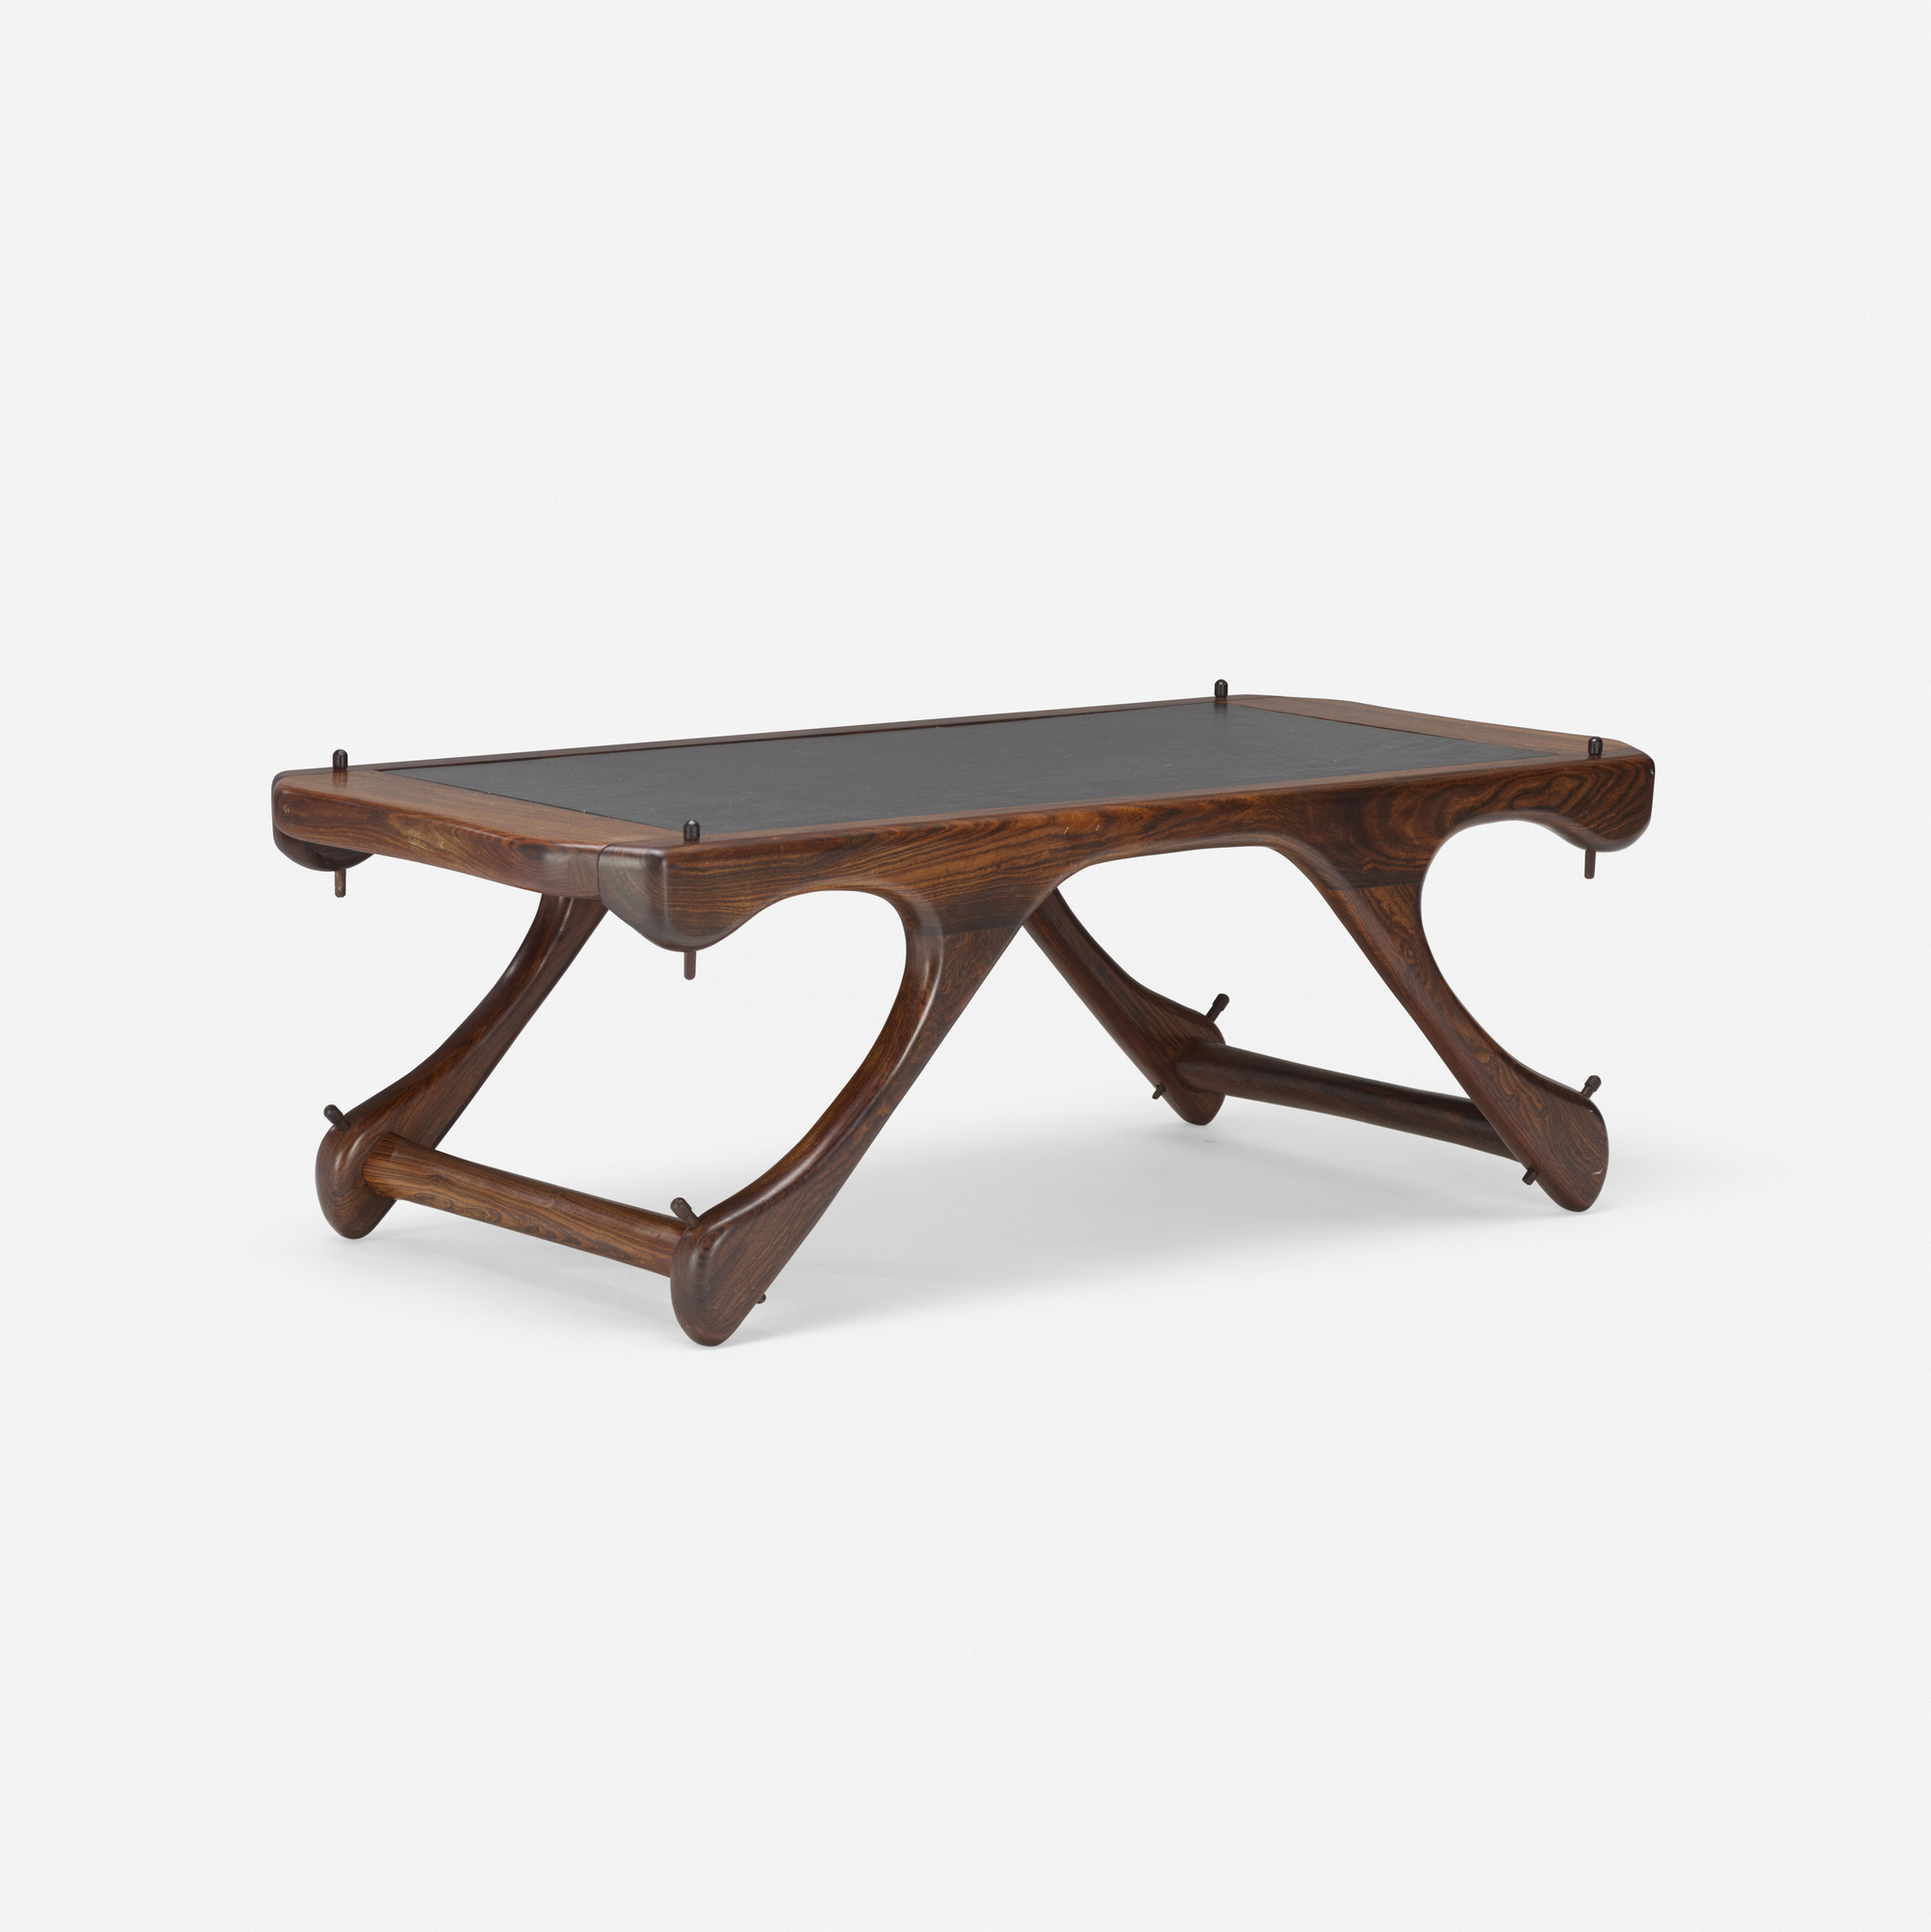 729: Don Shoemaker / coffee table (1 of 2)